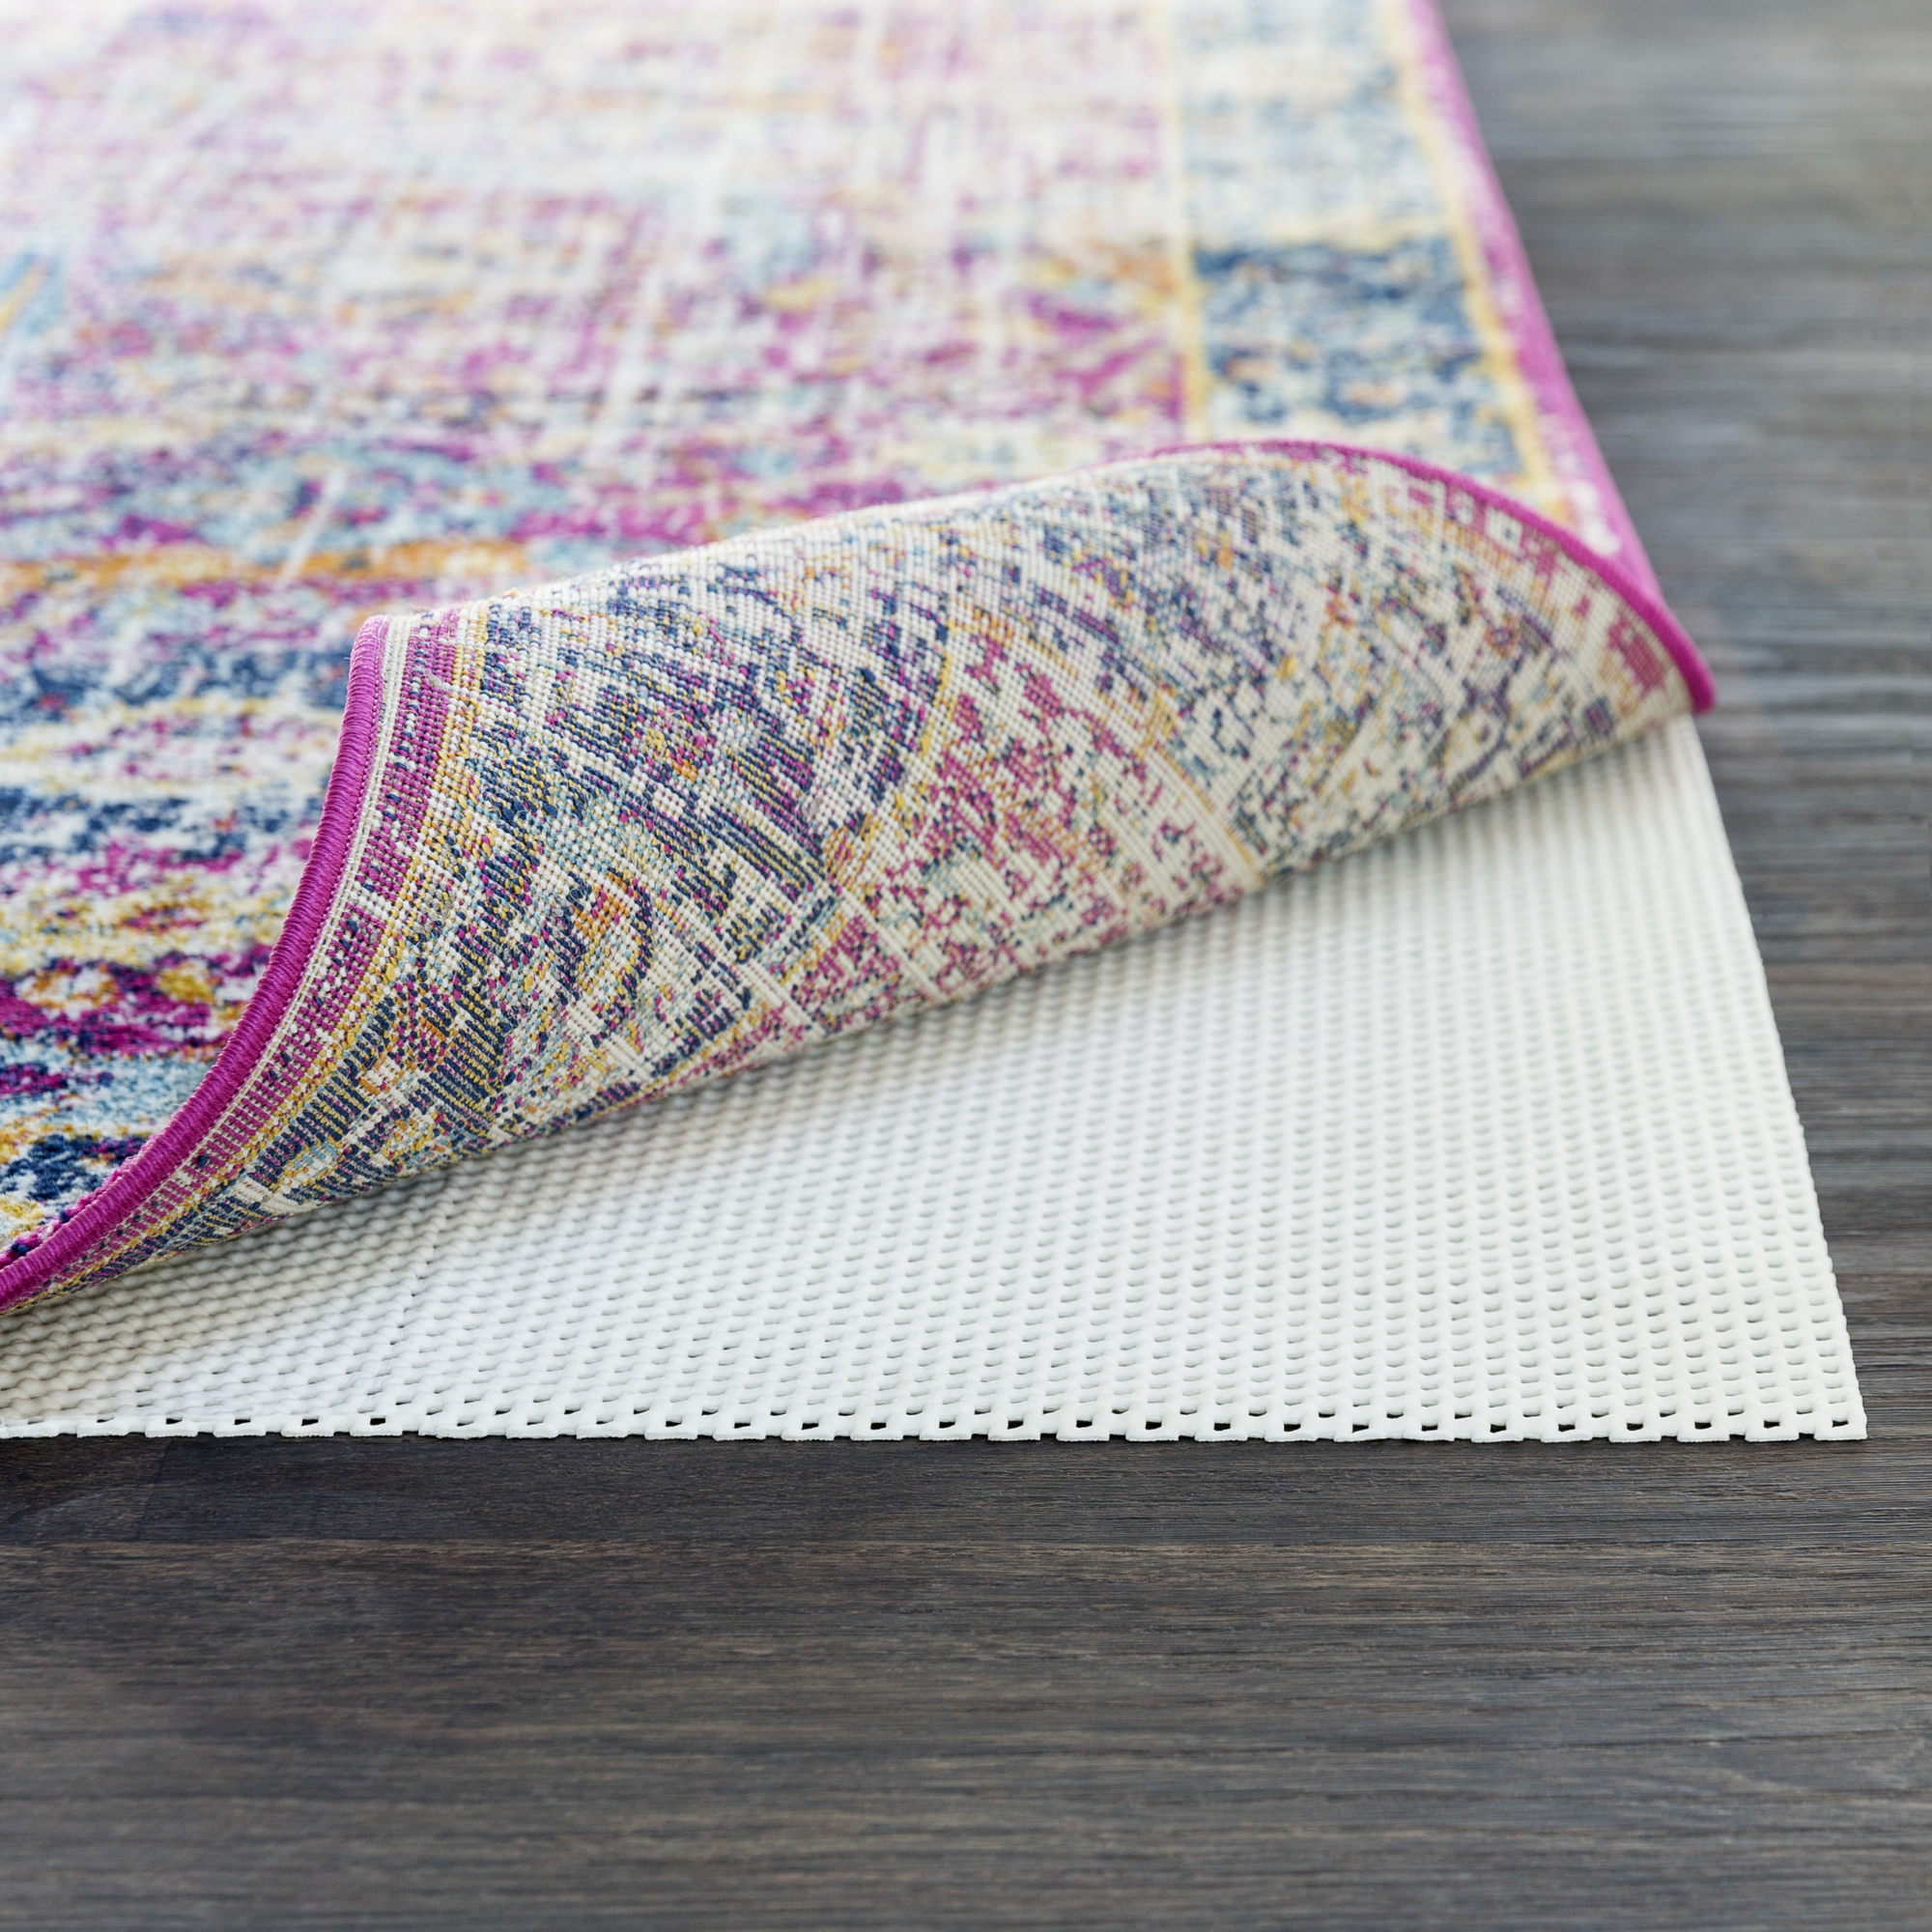 Art of Knot 10' x 14' Luxury Grip Rug Pad by Art of Knot